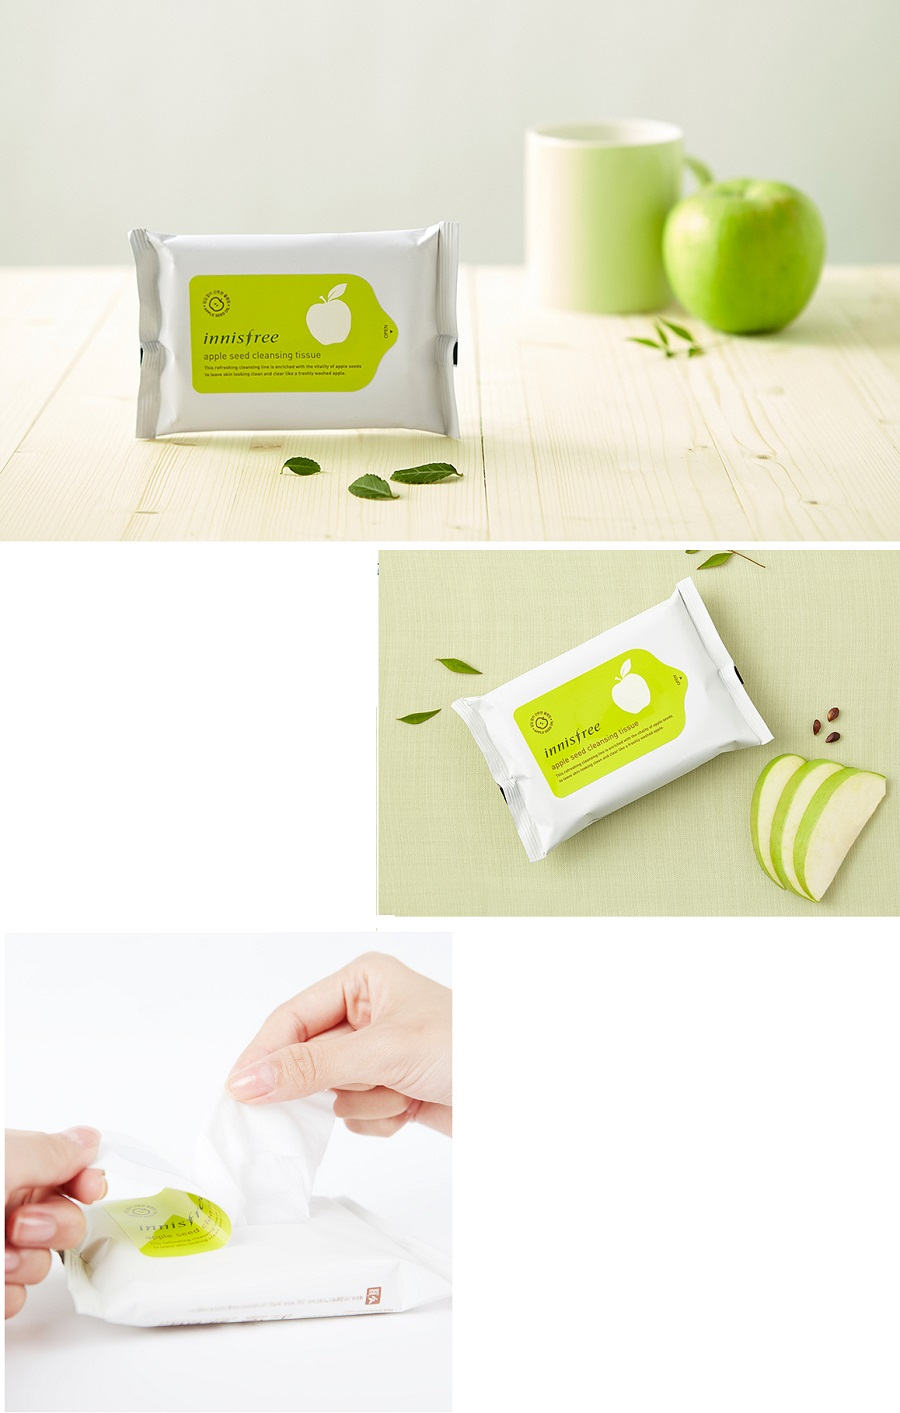 Innisfree Apple Seed Cleansing Tissue